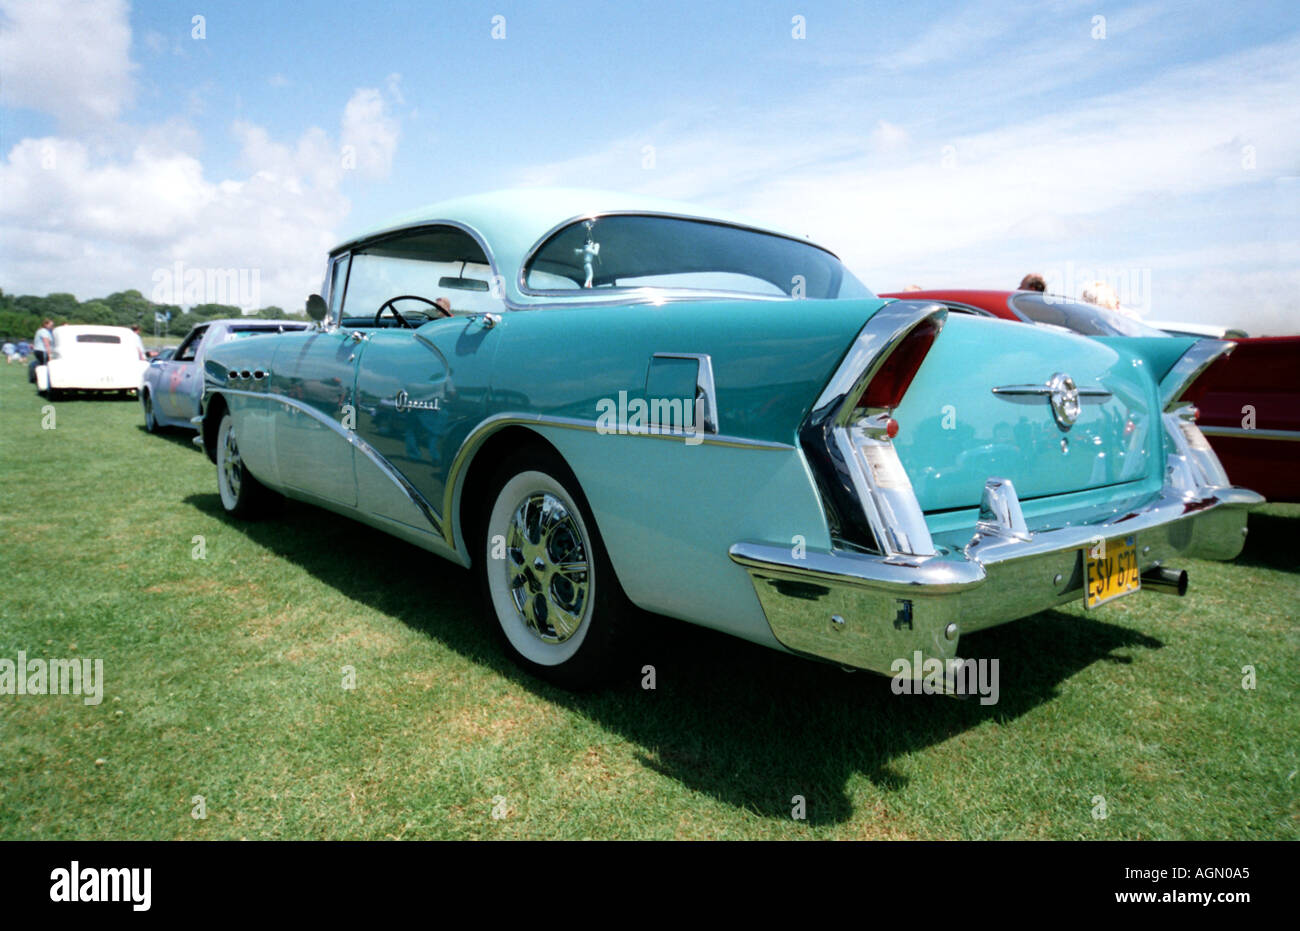 1958 Buick Invicta Stock Photo Royalty Free Image